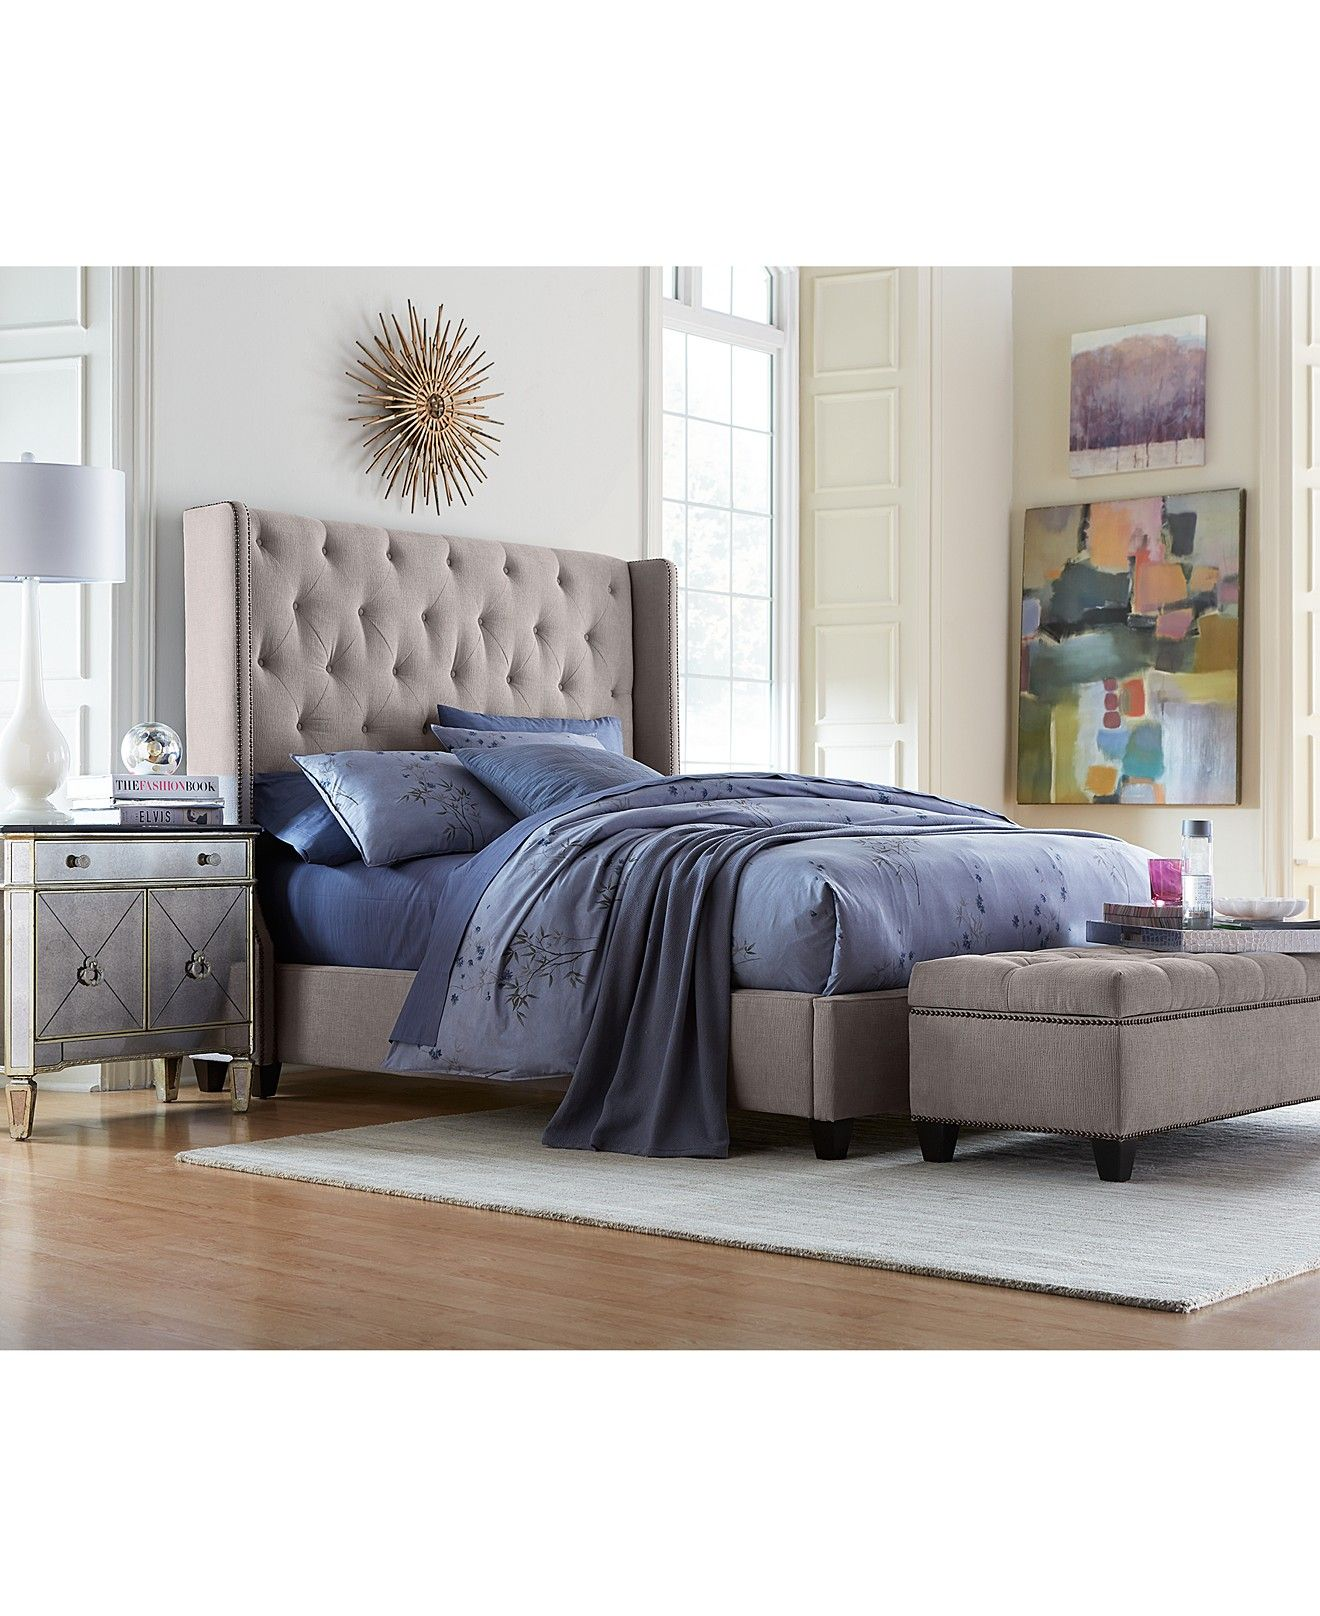 Rosalind Upholstered Bedroom Furniture | Bedrooms, Nailhead trim ...